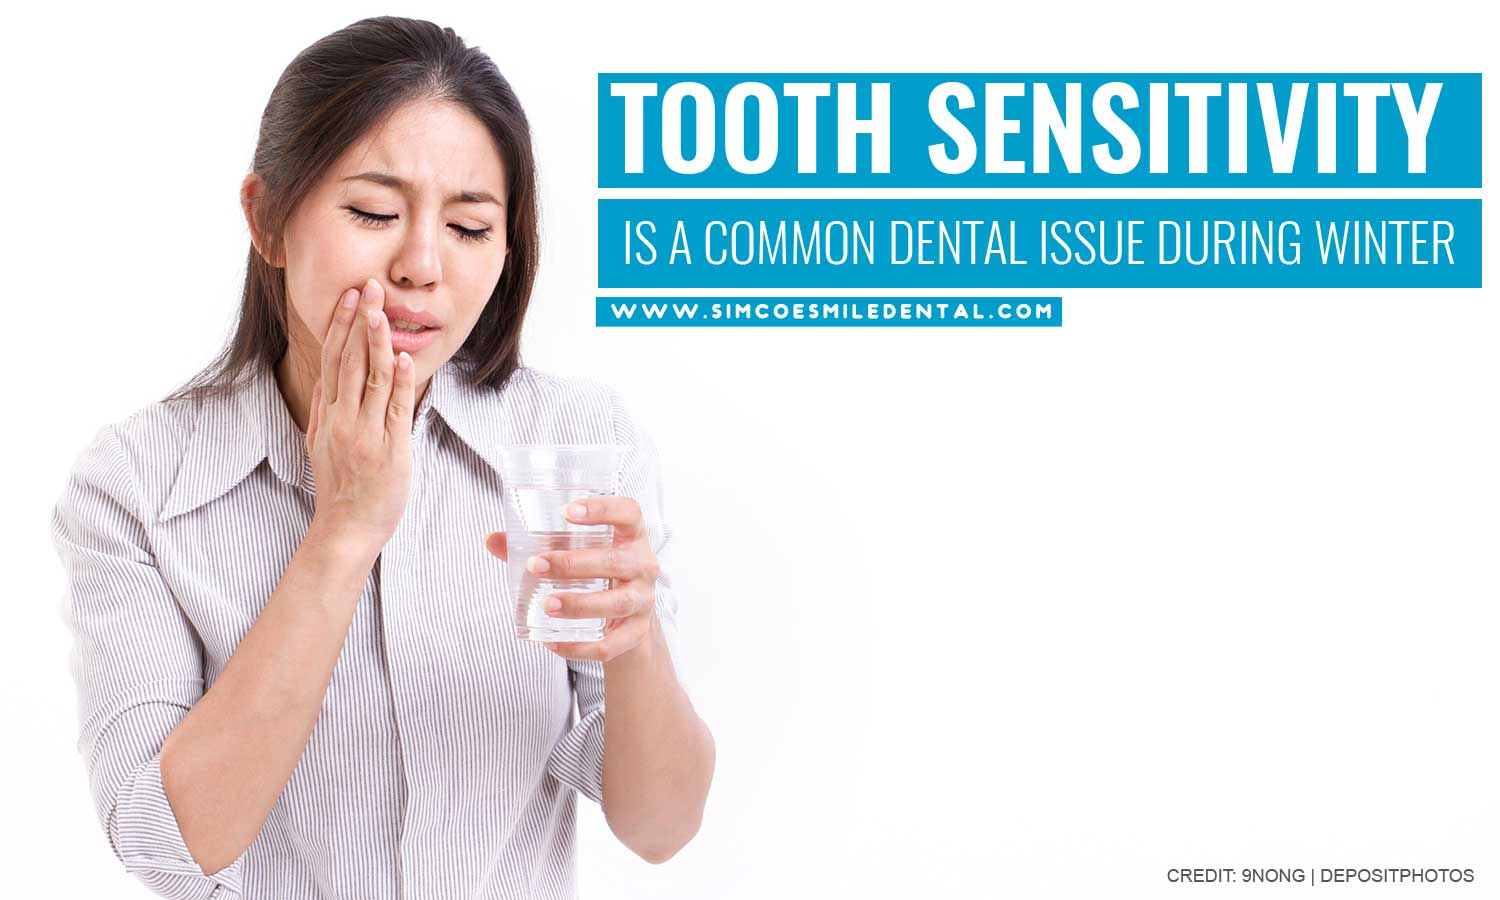 Tooth-sensitivity-is-a-common-dental-issue-during-winter How Winter Can Affect Your Dental Health